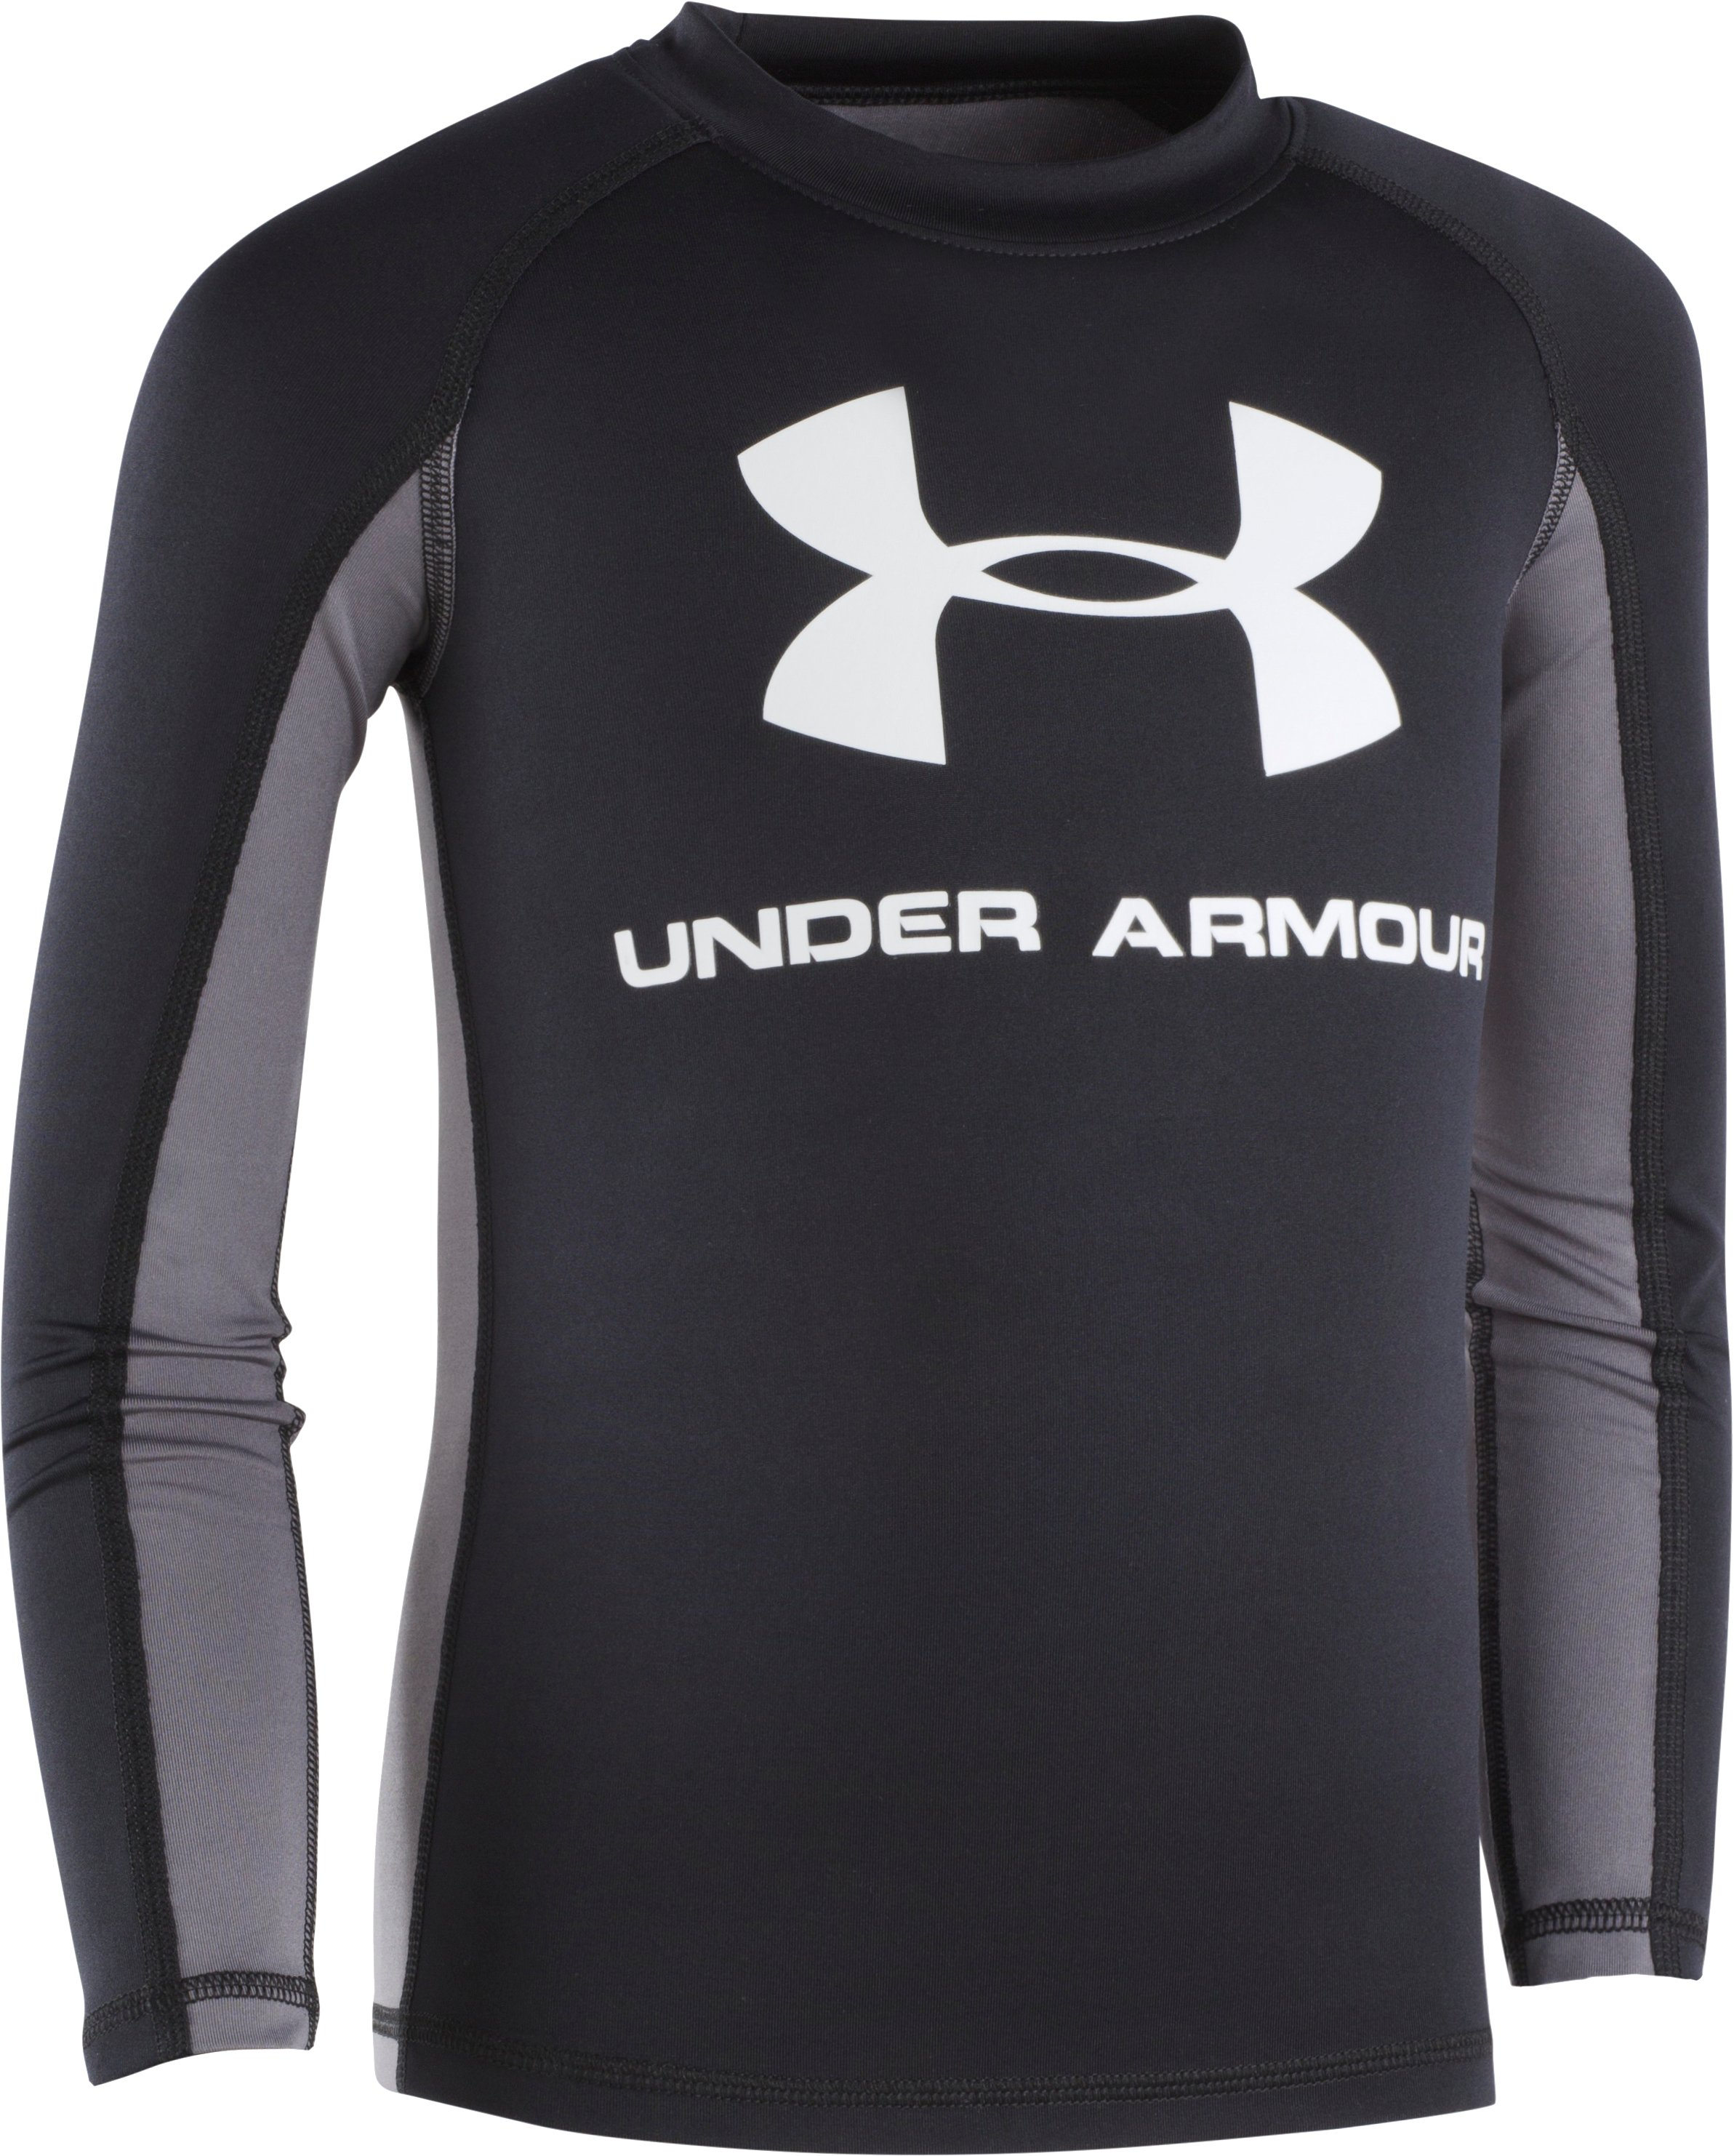 Boys' UA Compression Long Sleeve Rashguard Shirt, Black